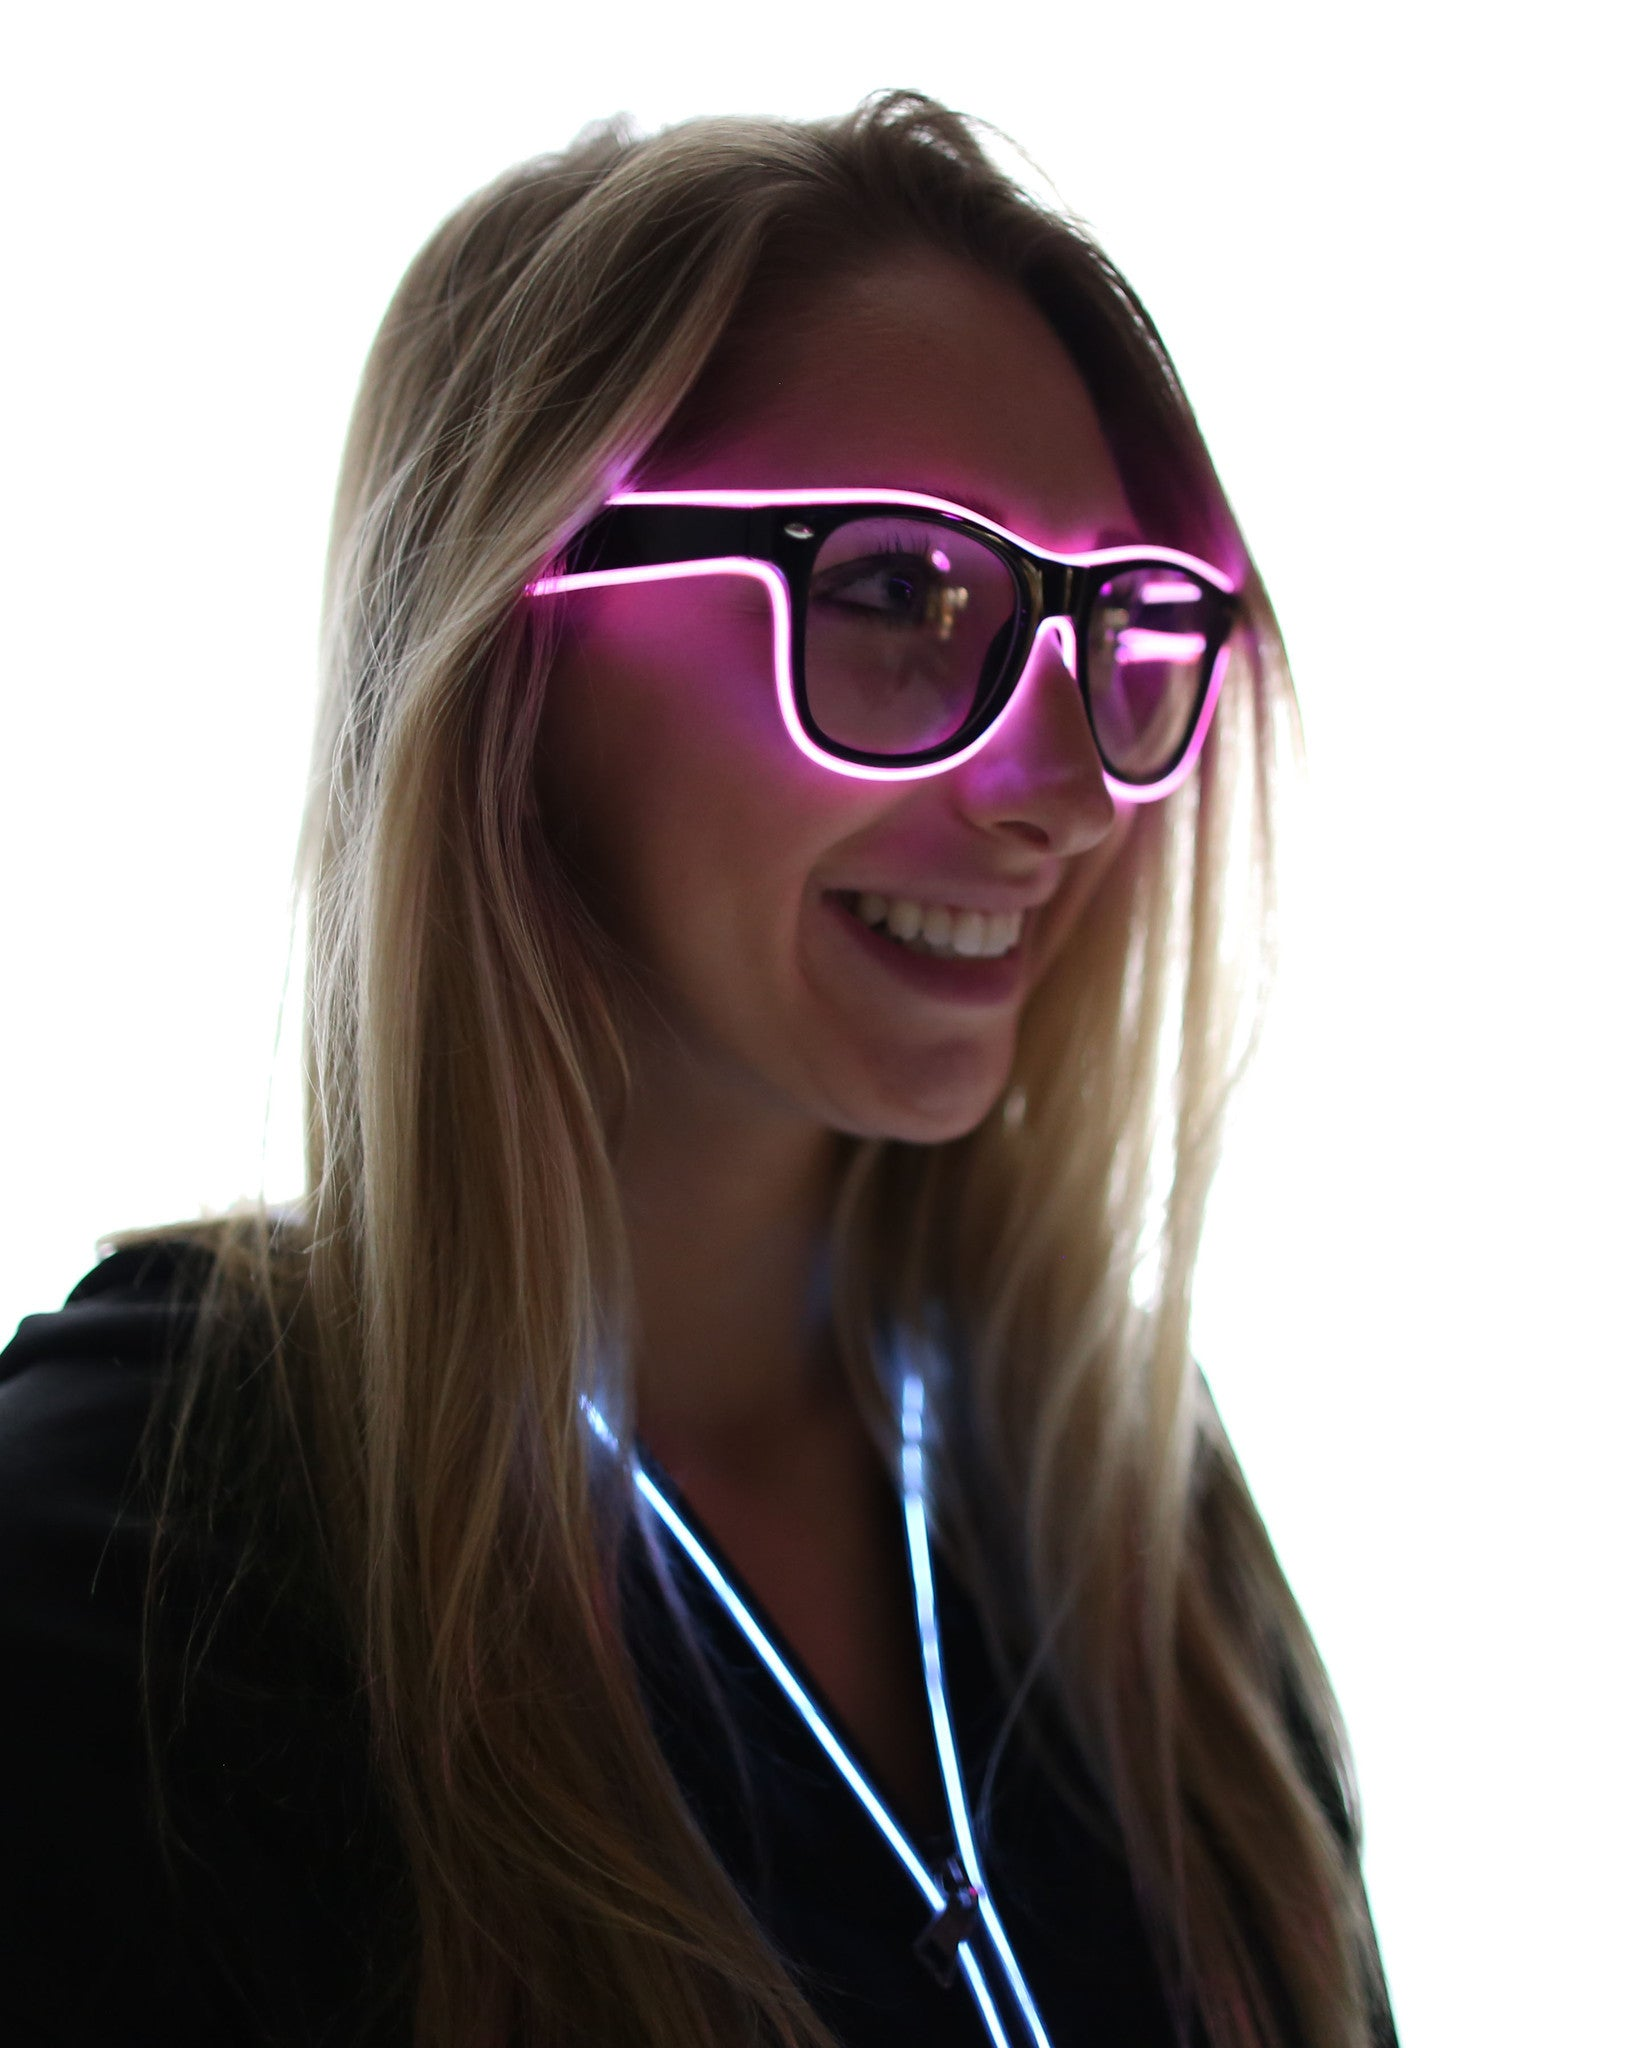 Light Up Glasses - Electric Styles | World's Number 1 Light Up Shoe Store - {product_type}} -  - 1